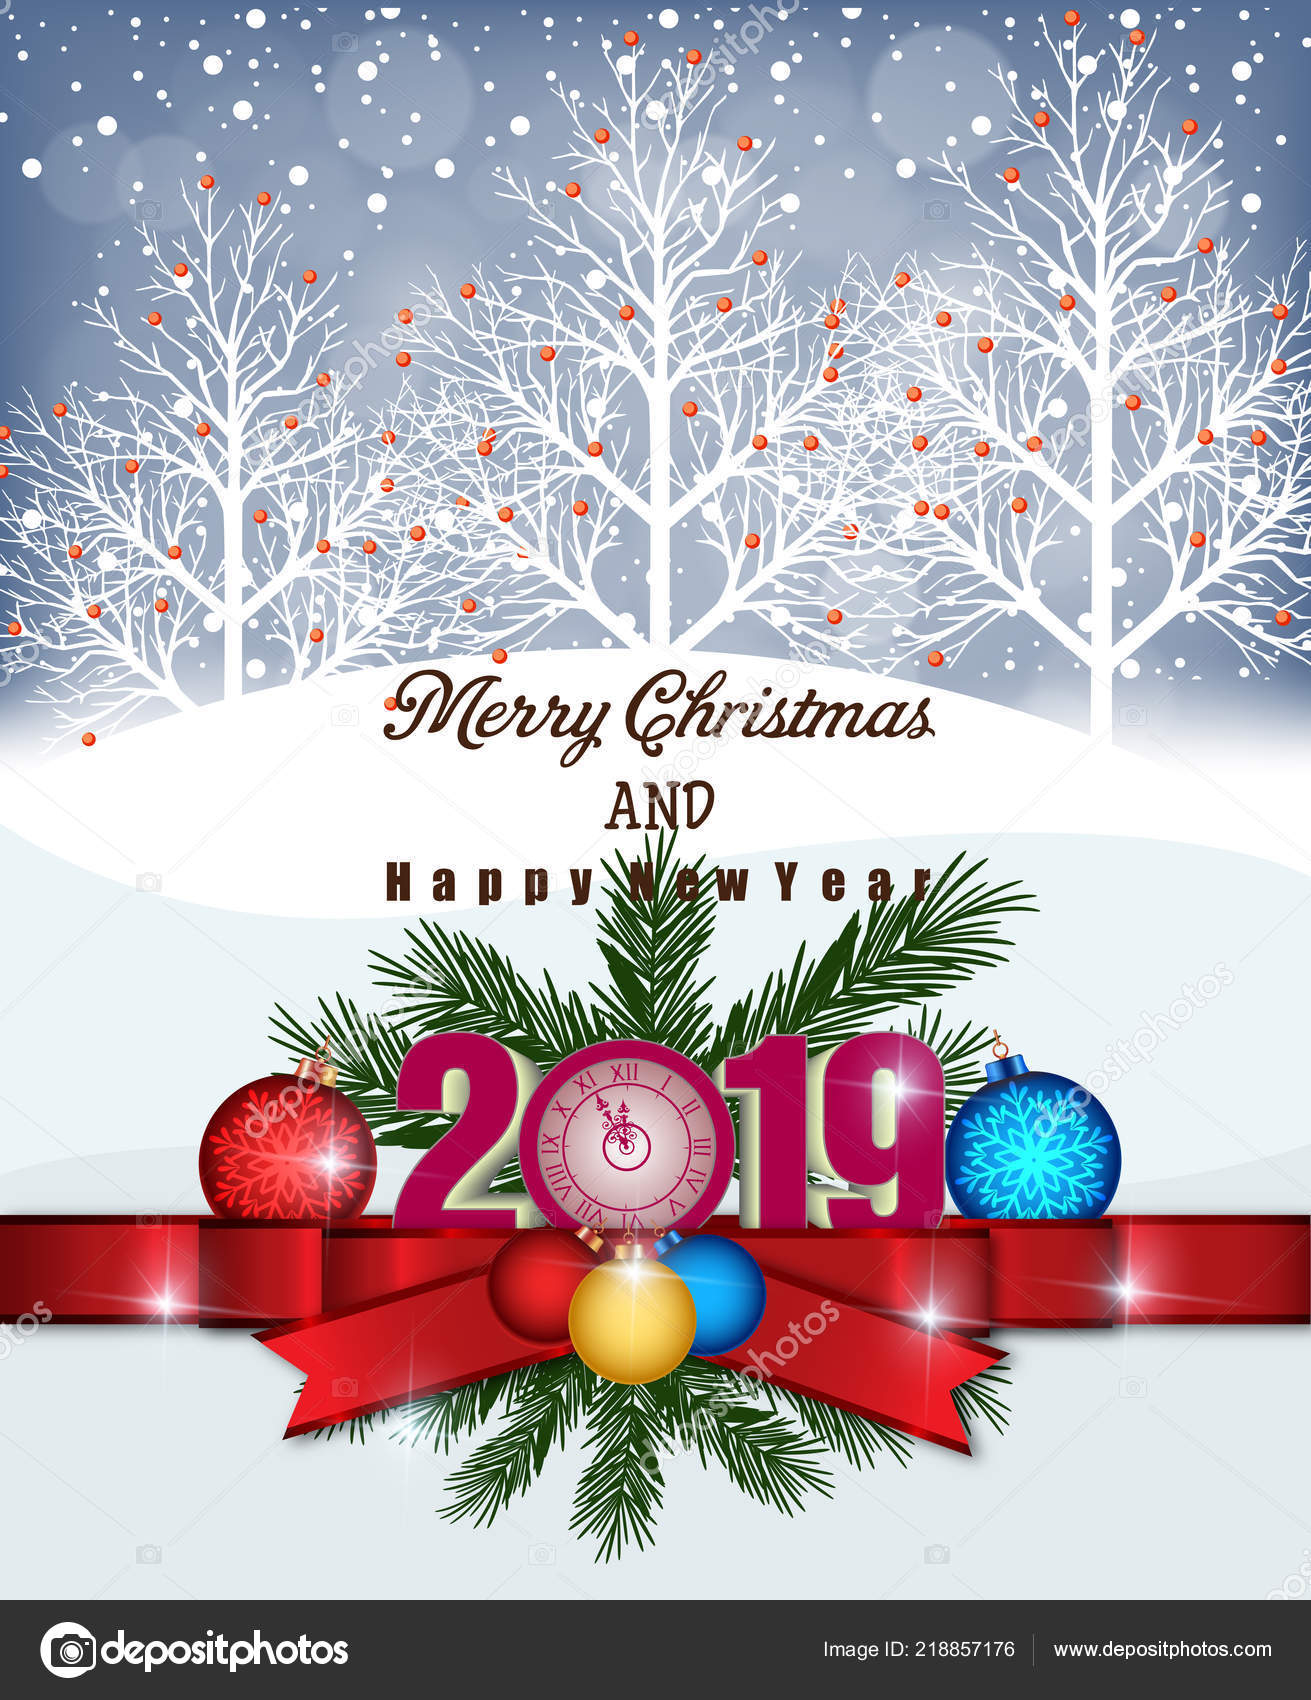 Merry Christmas Happy New Year 2019 — Stock Vector © tieulong #218857176